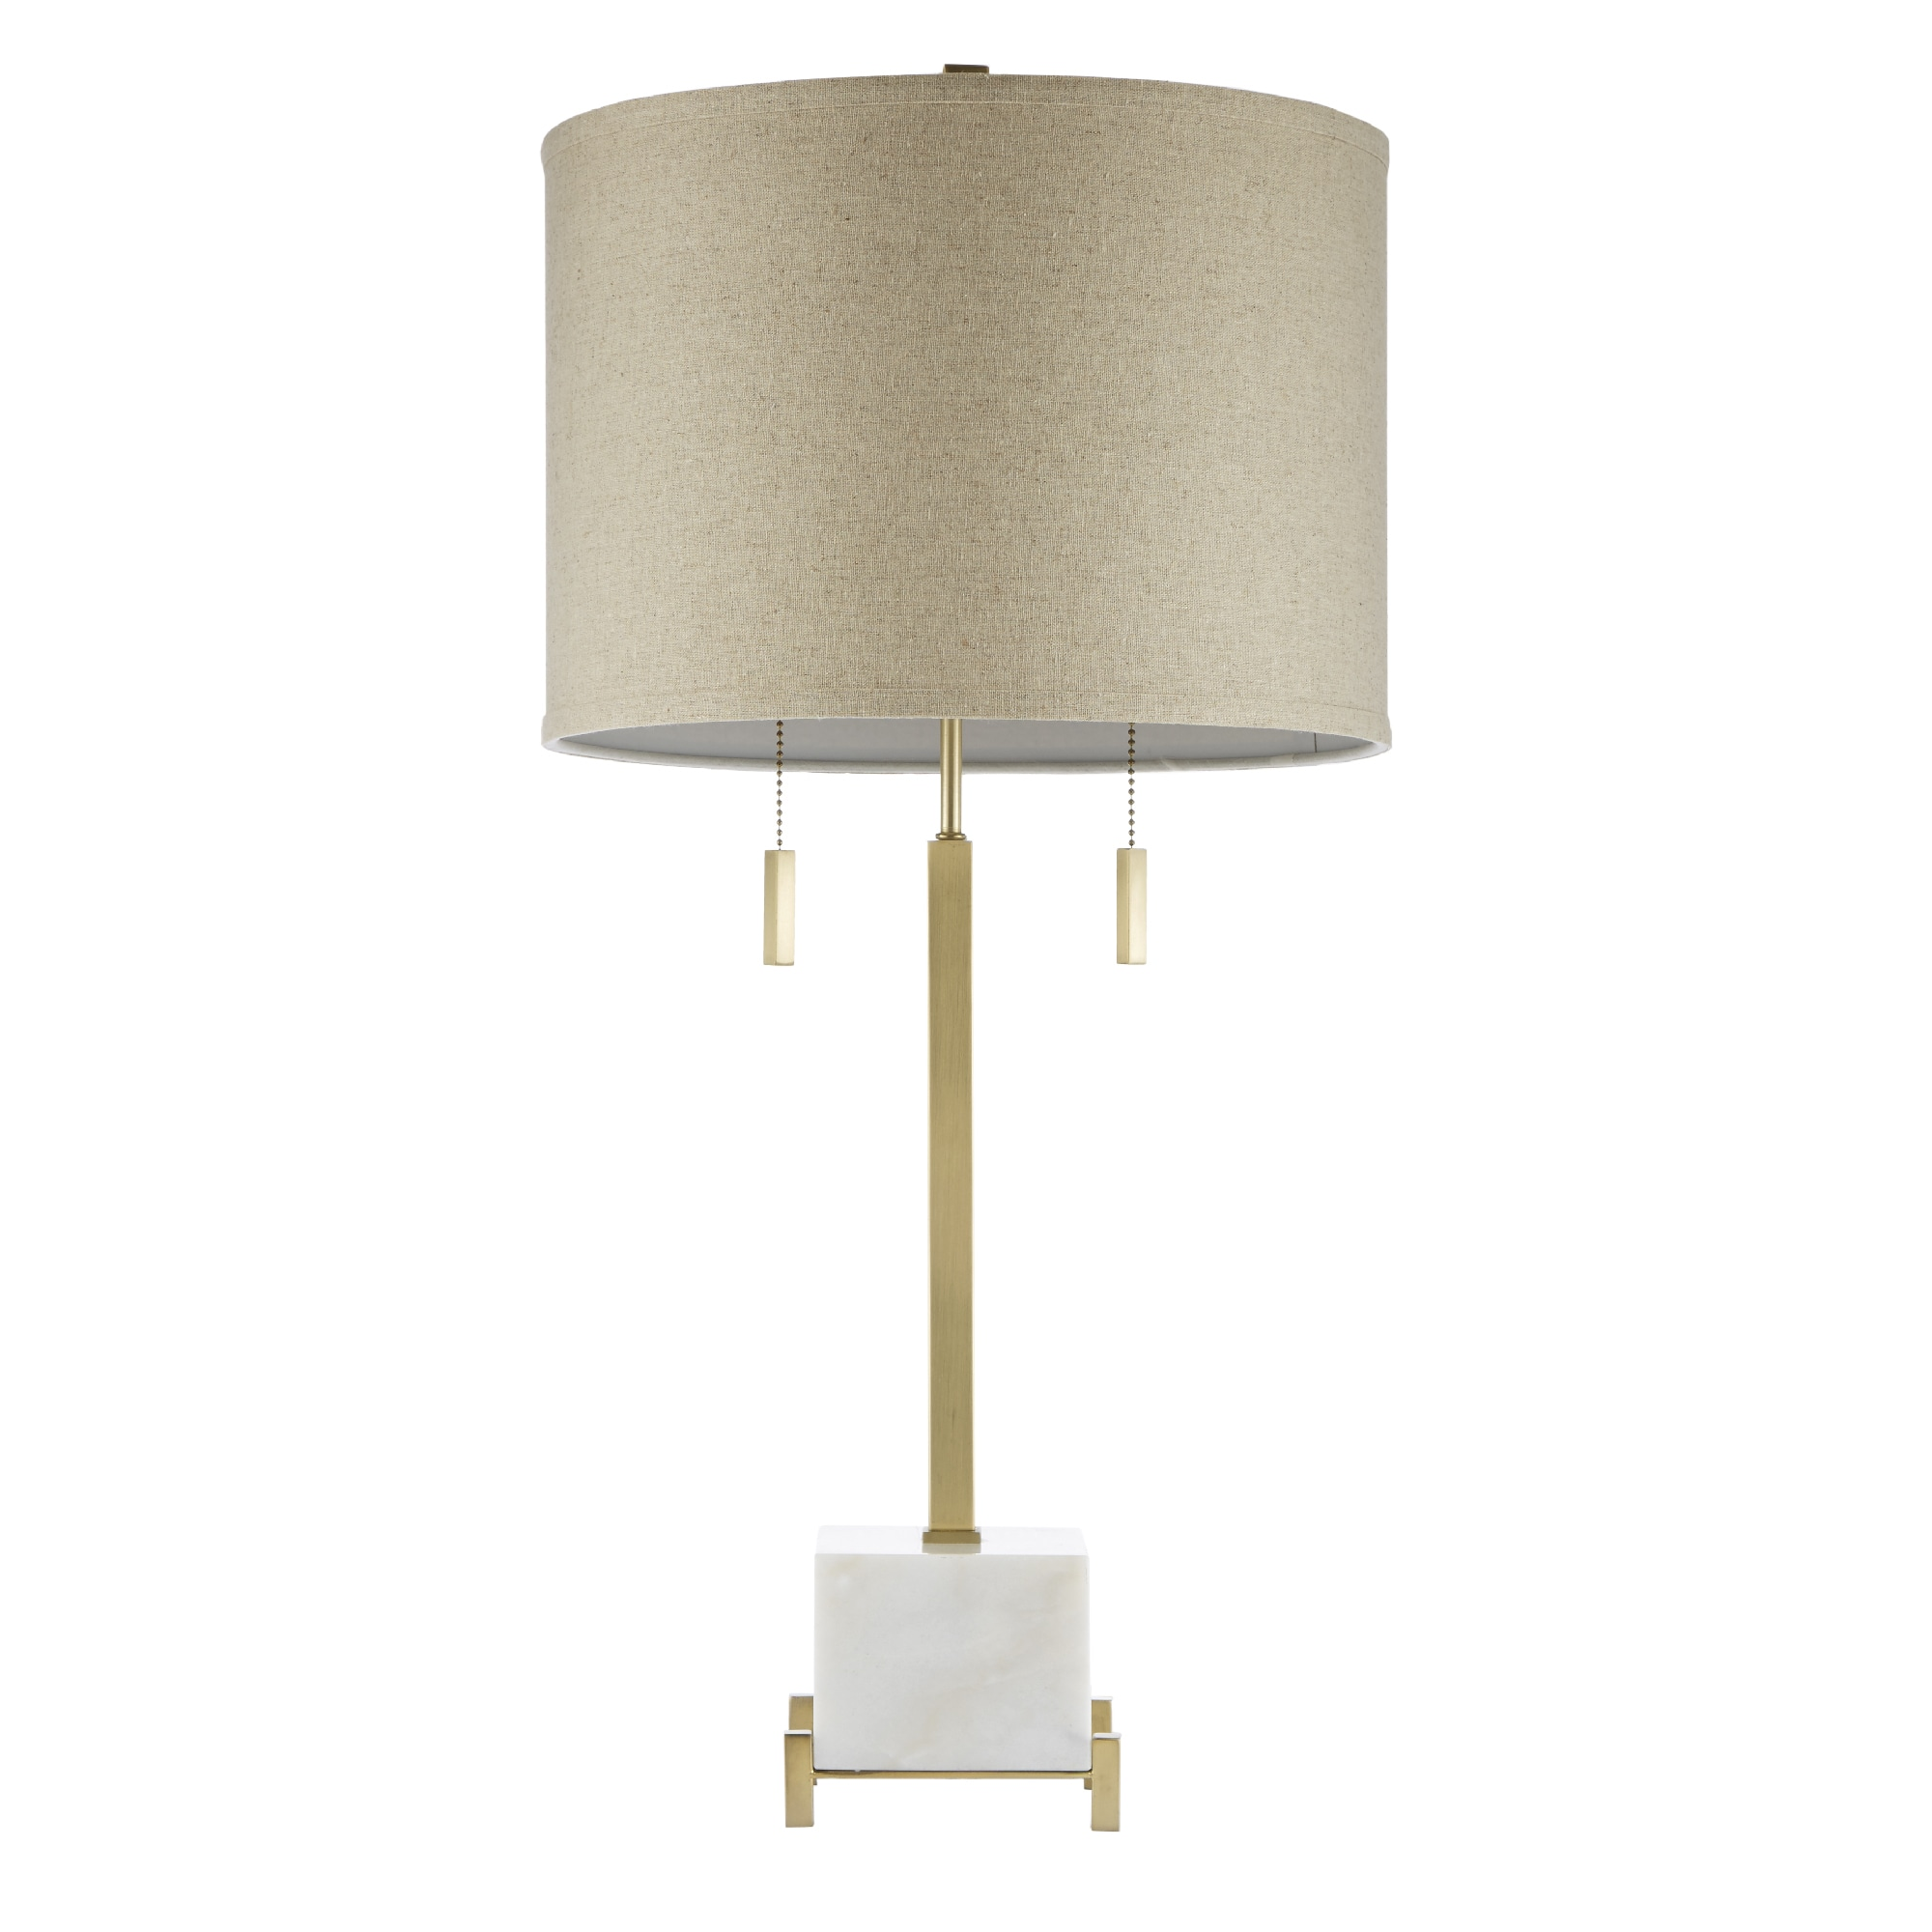 and pattern remarkable floor styles lamp cross base furniture white design tripod pin come with marvelous beautiful gold